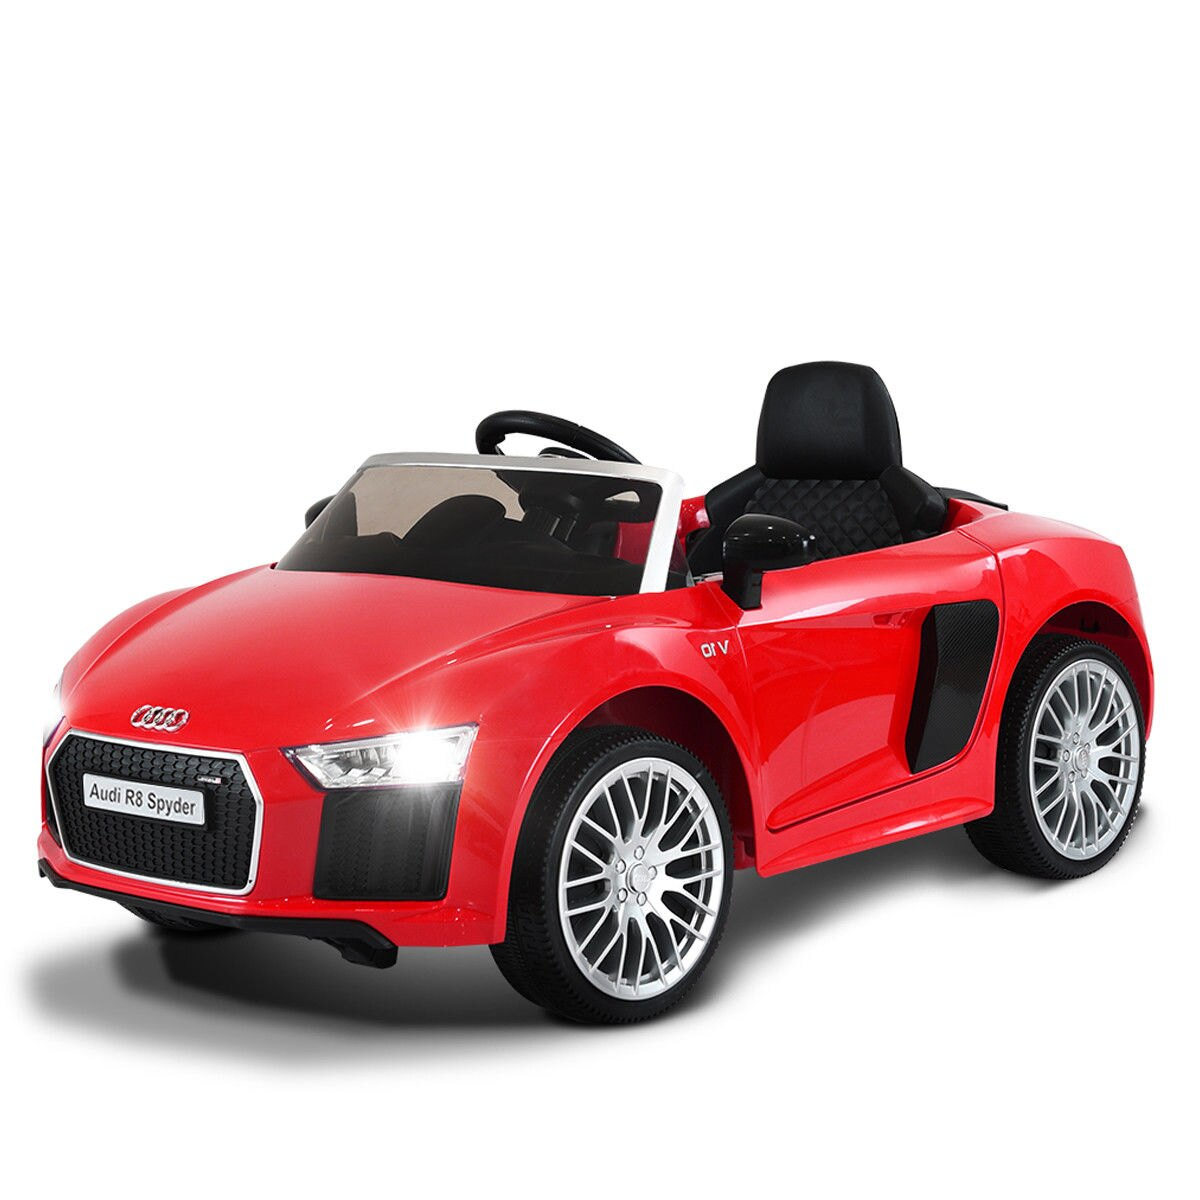 69a5a49b7e7fa Costway 12V Audi R8 Spyder Licensed Electric Kids Ride On Car R C  Suspension MP3